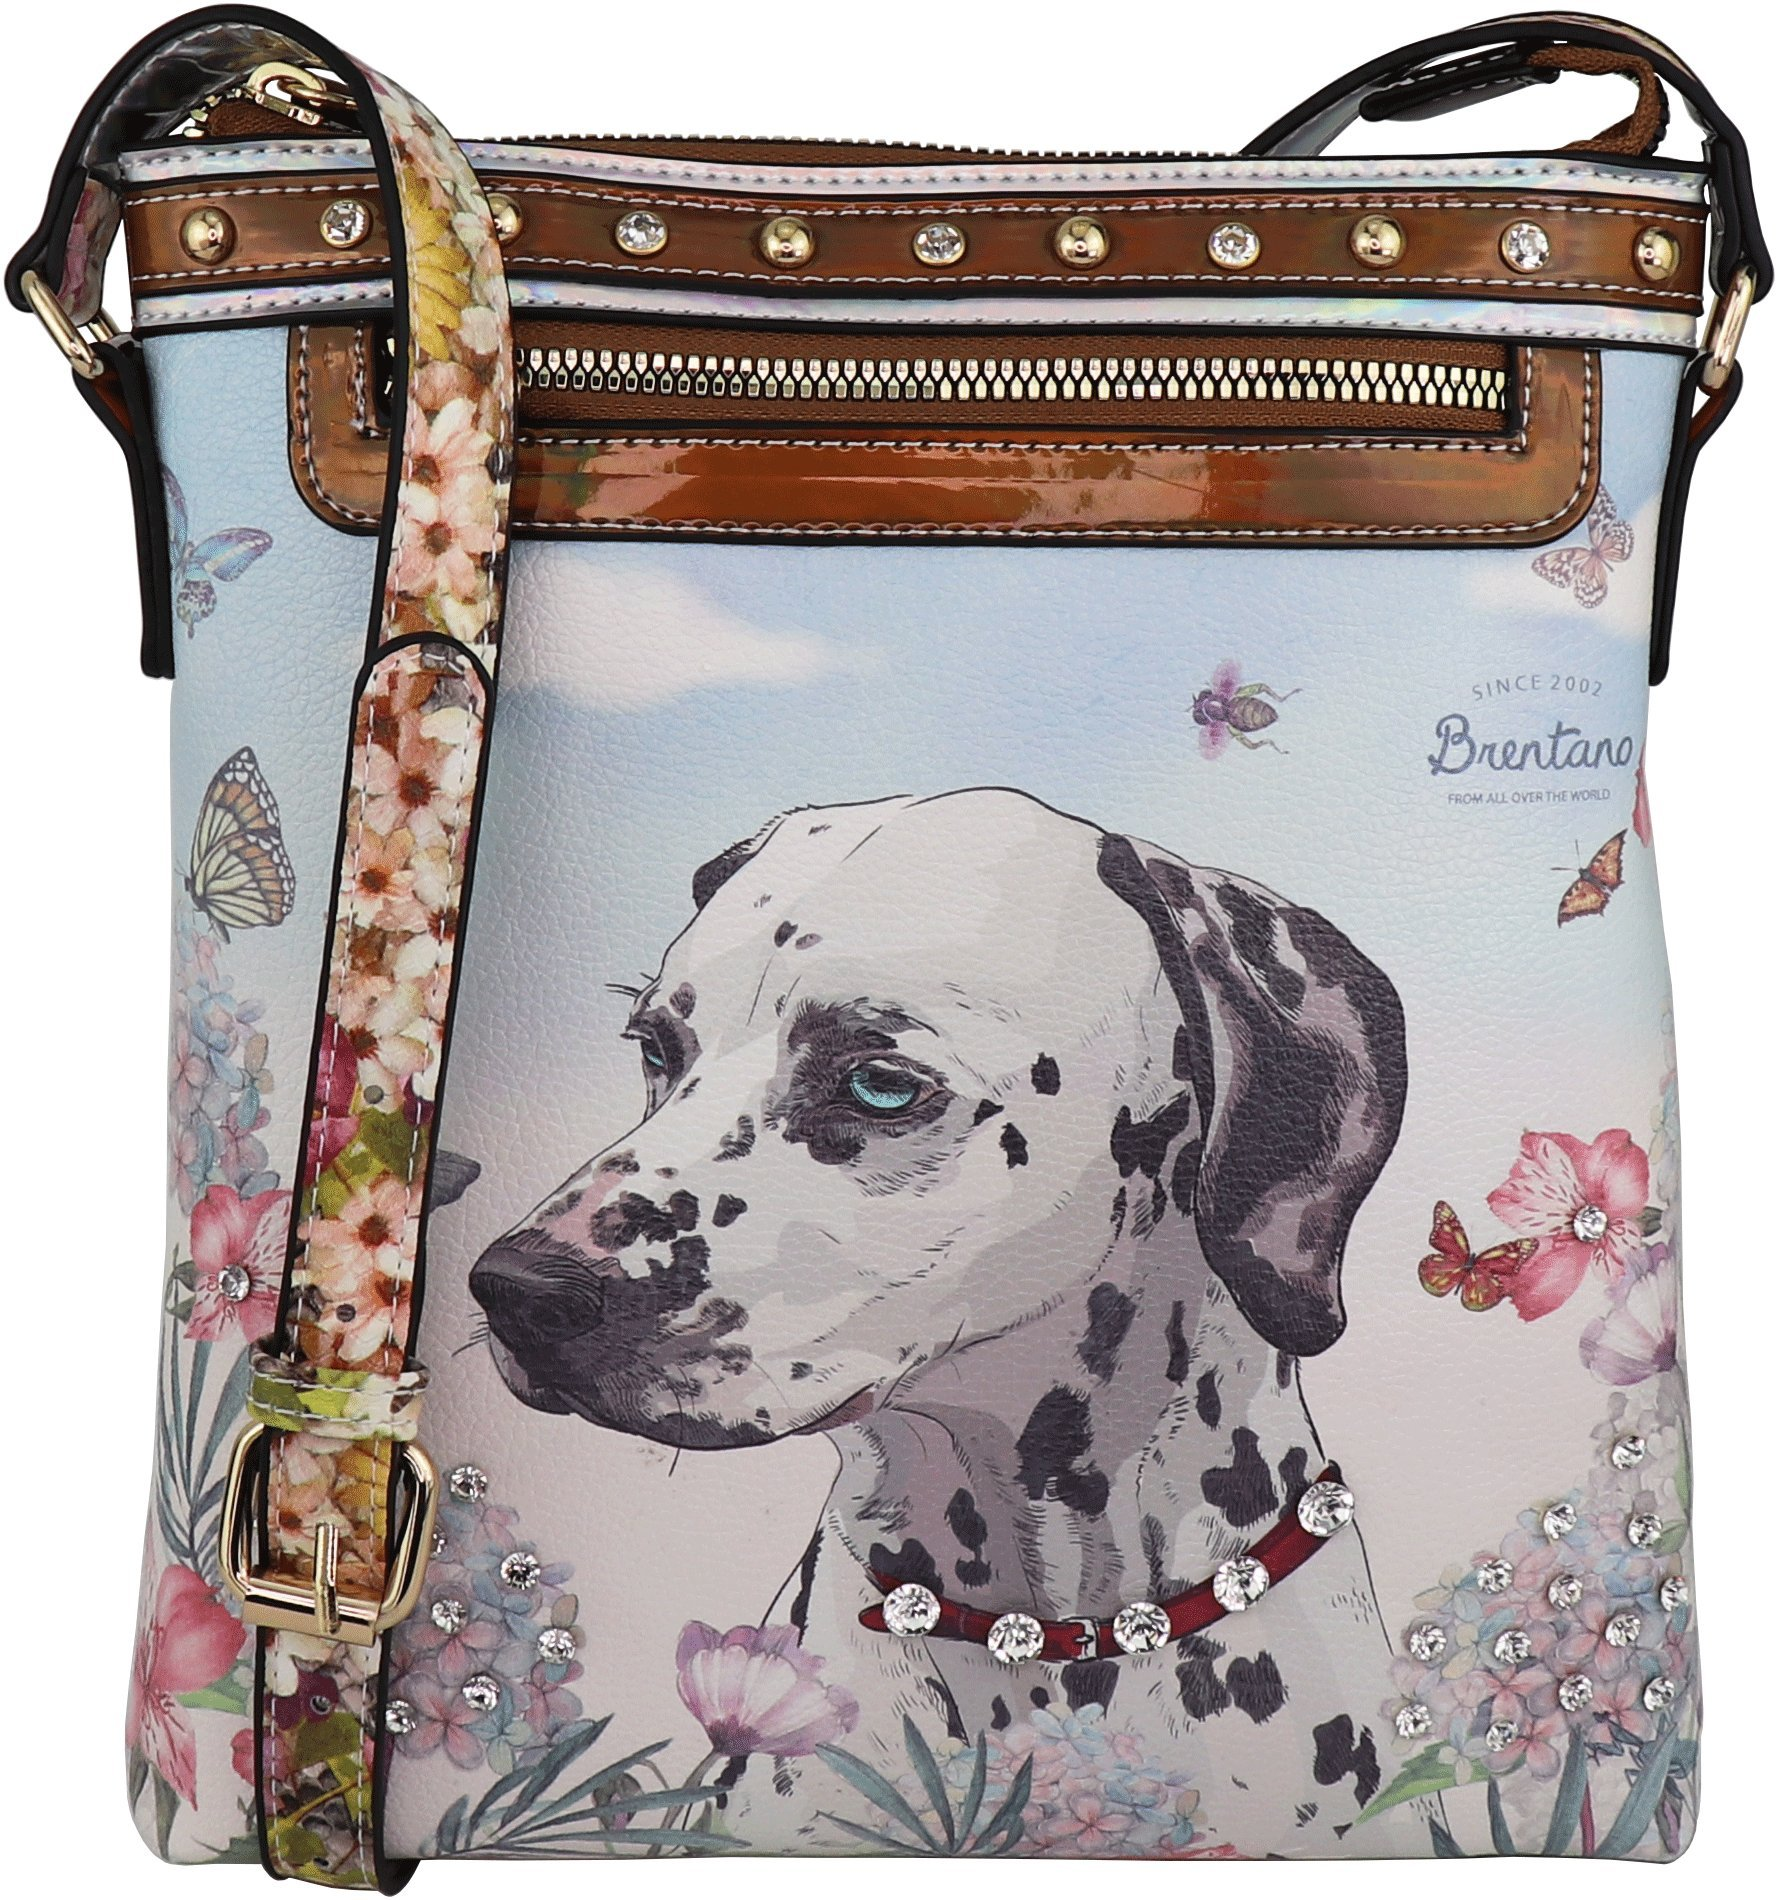 B BRENTANO Cute Animal Graphic Crossbody Bag Purse with Rhinestones (Garden Dalmatian)